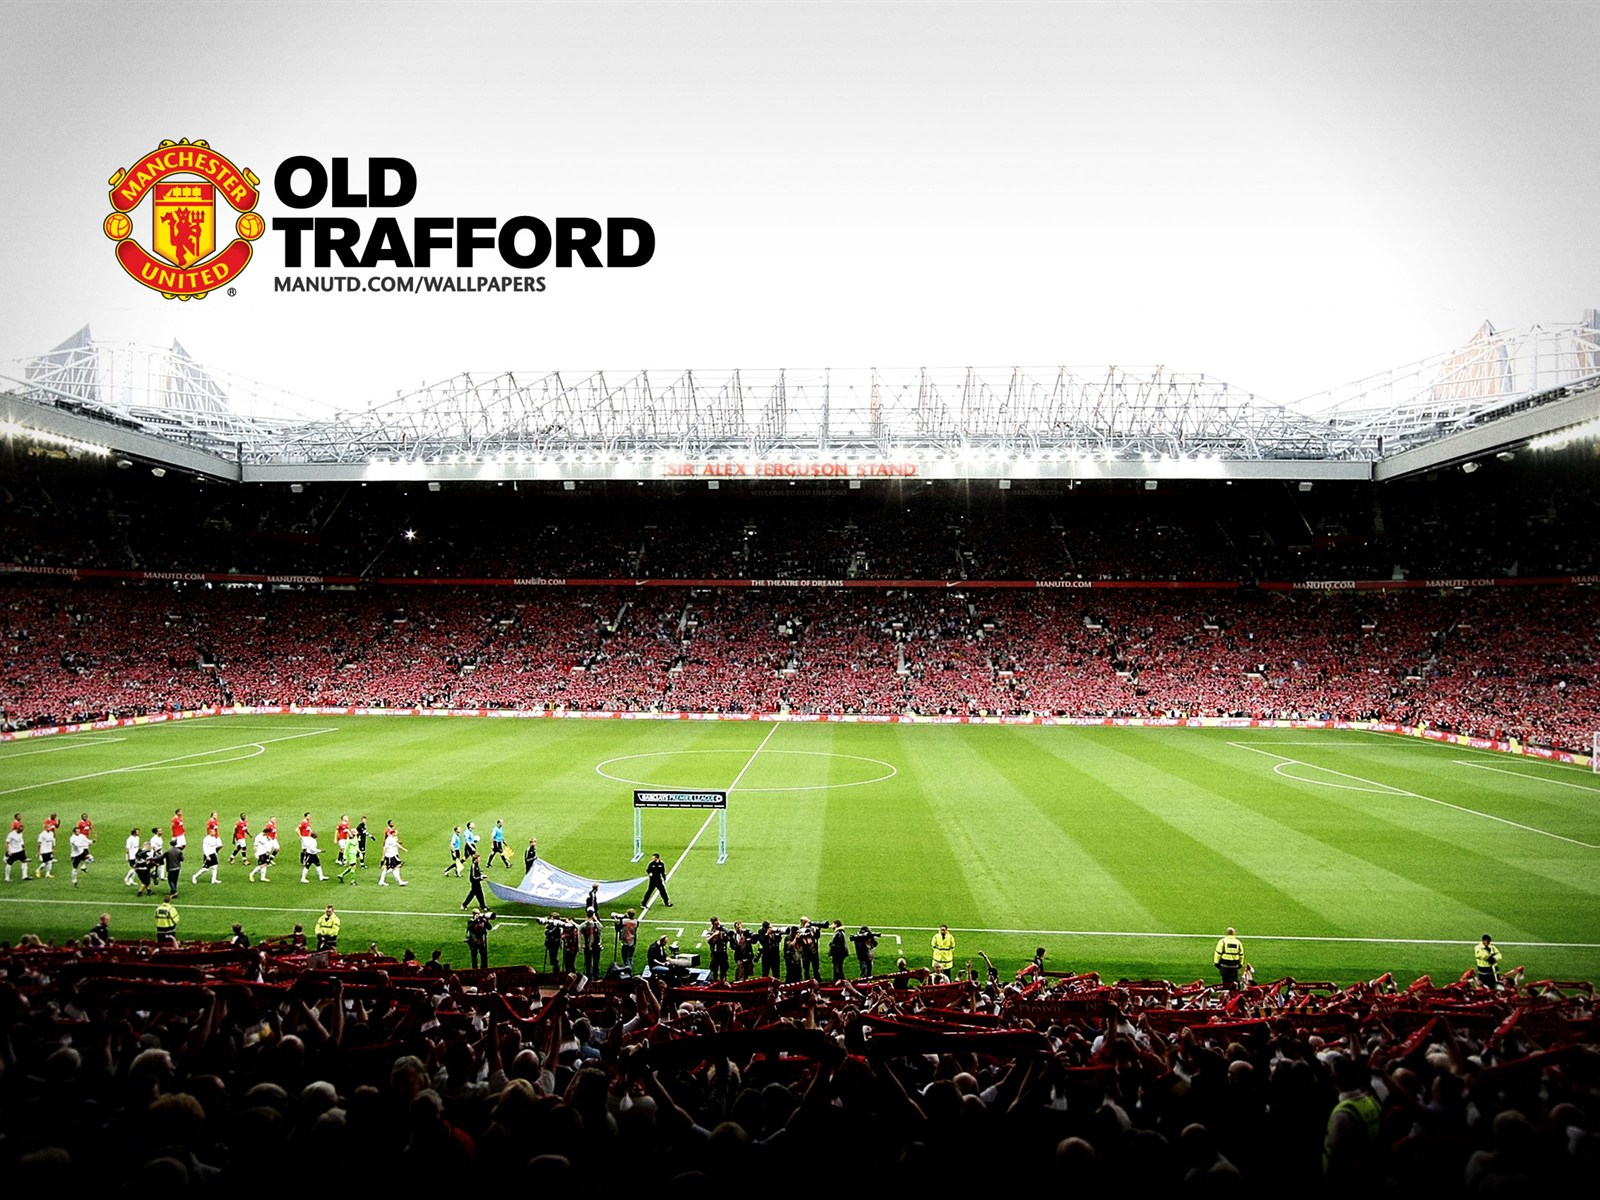 Old trafford wallpapers hd wallpapersafari - Manchester united latest wallpapers hd ...